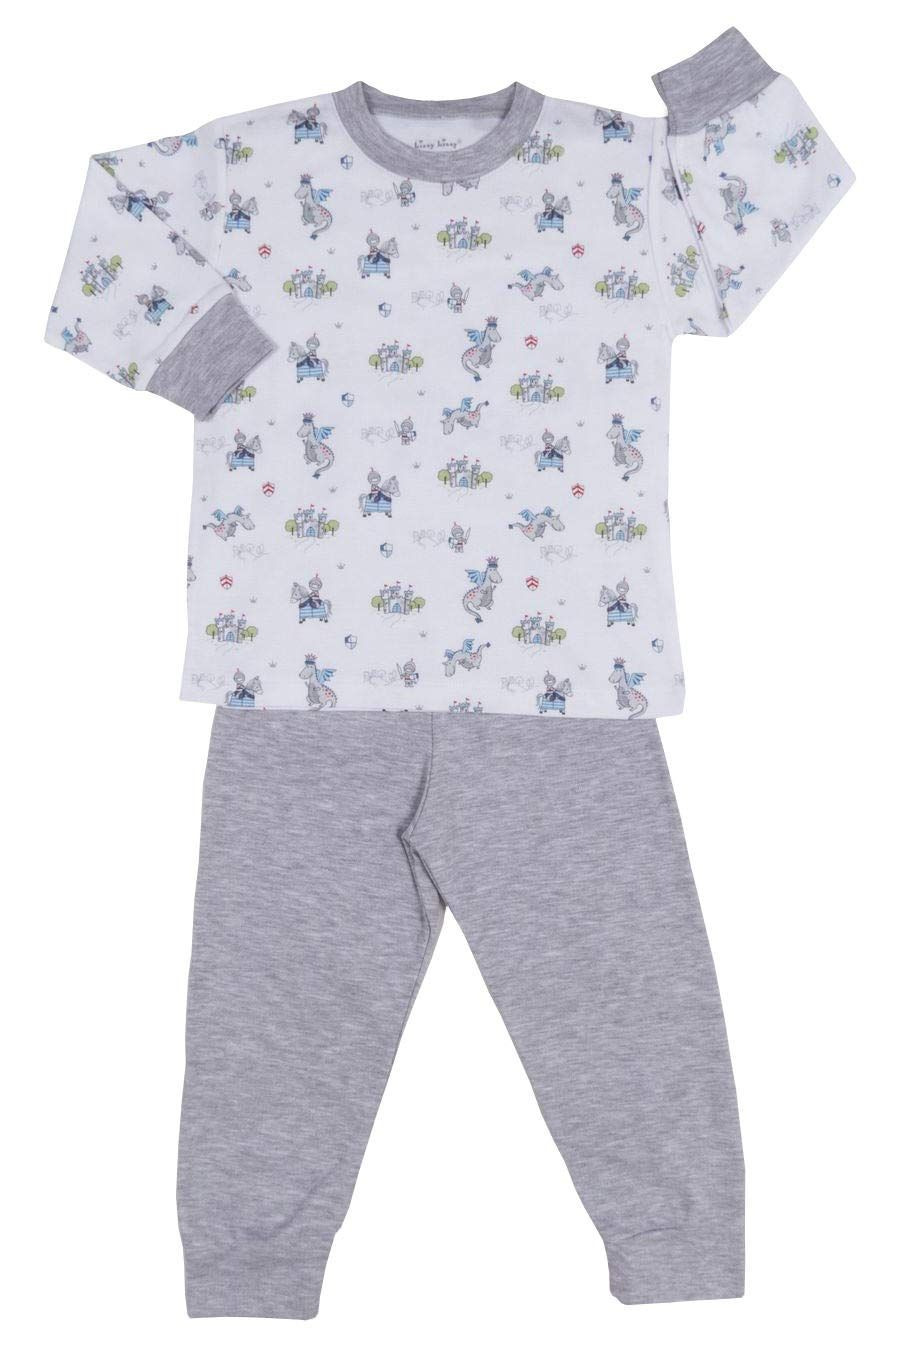 Kissy Kissy Babyboys Infant King Of The Castle Print Long Pajamas Setmulticolored1218 Months Kids Fashion Clothes Little Boy Outfits Baby Boy Clothes Newborn